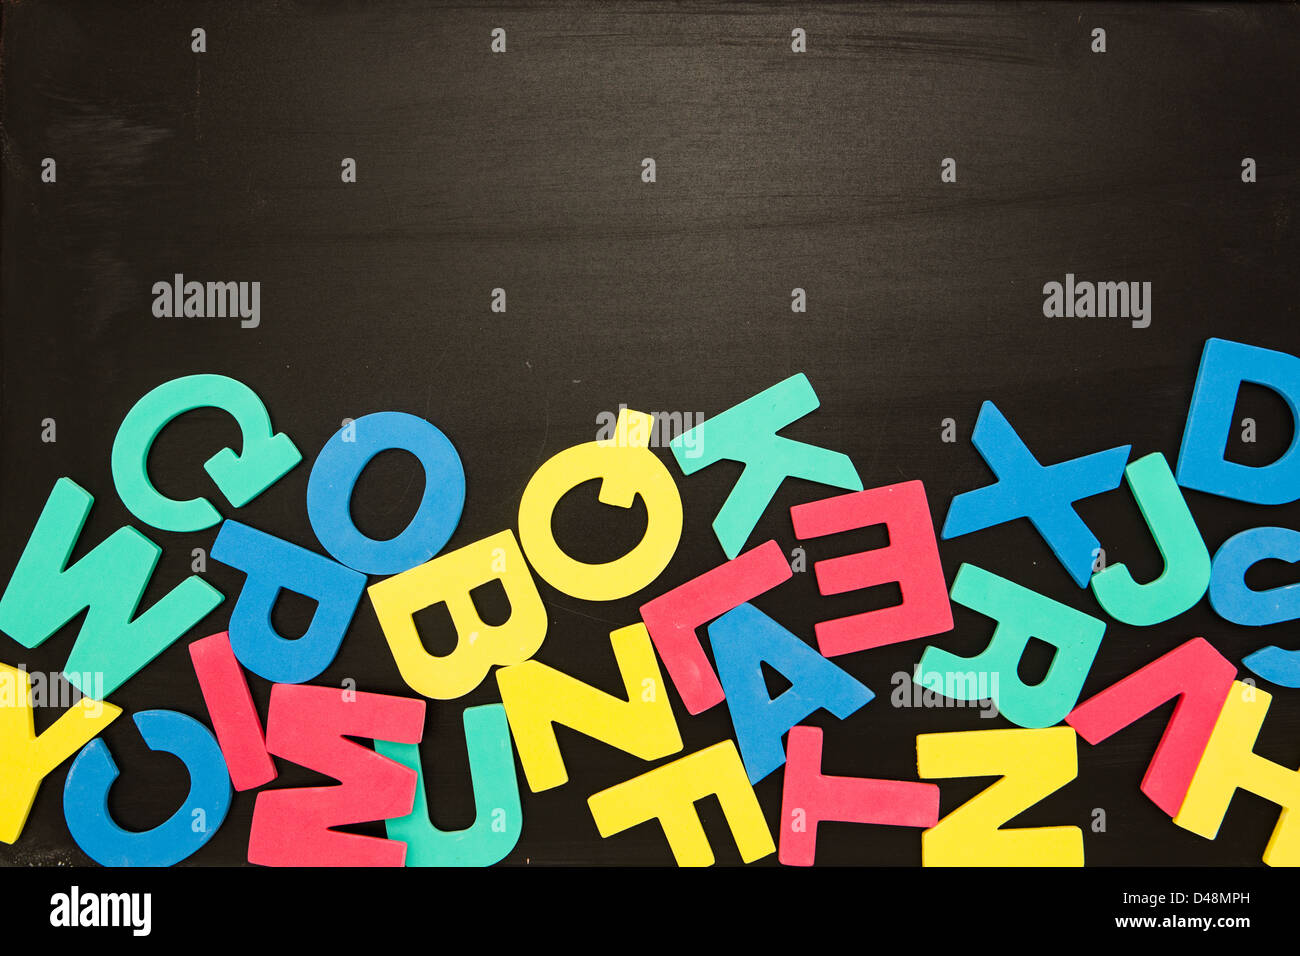 Alphabet magnets in a jumble on blackboard - Stock Image